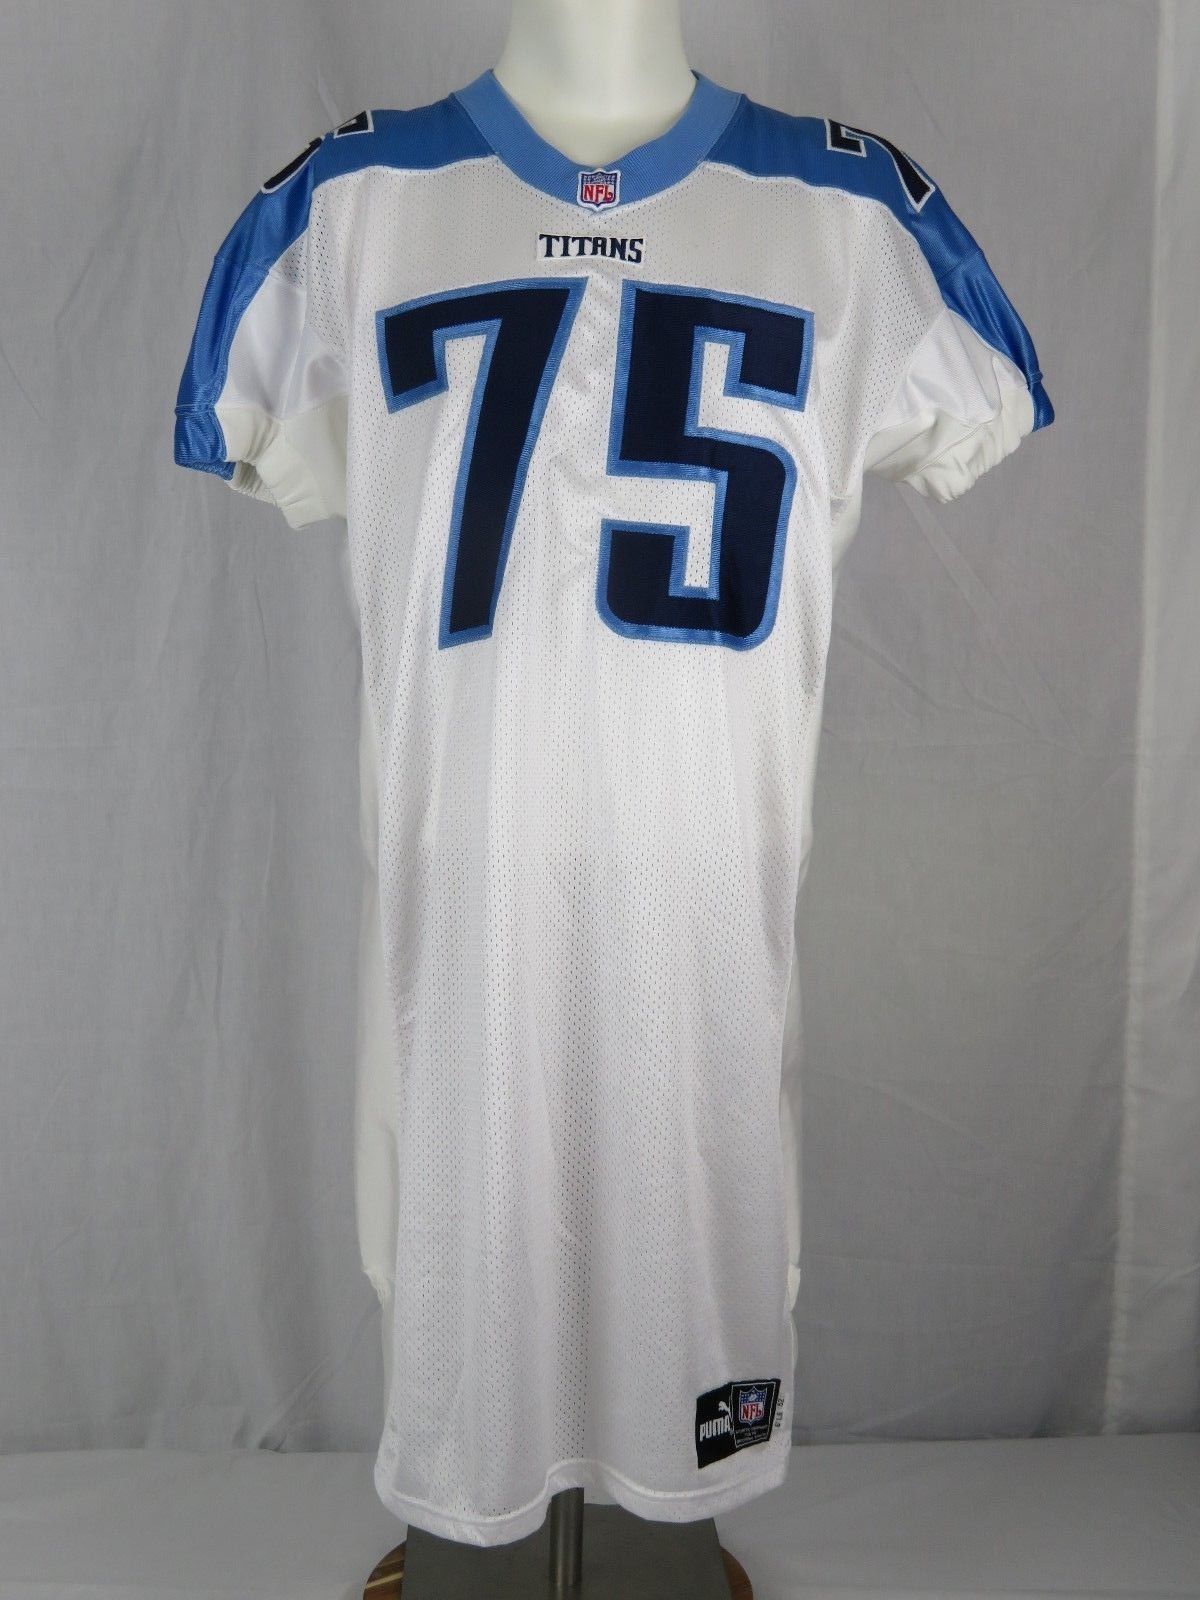 promo code 936f9 76333 Tennessee Titans Puma Team Issued Practice Jersey #75 Benji ...